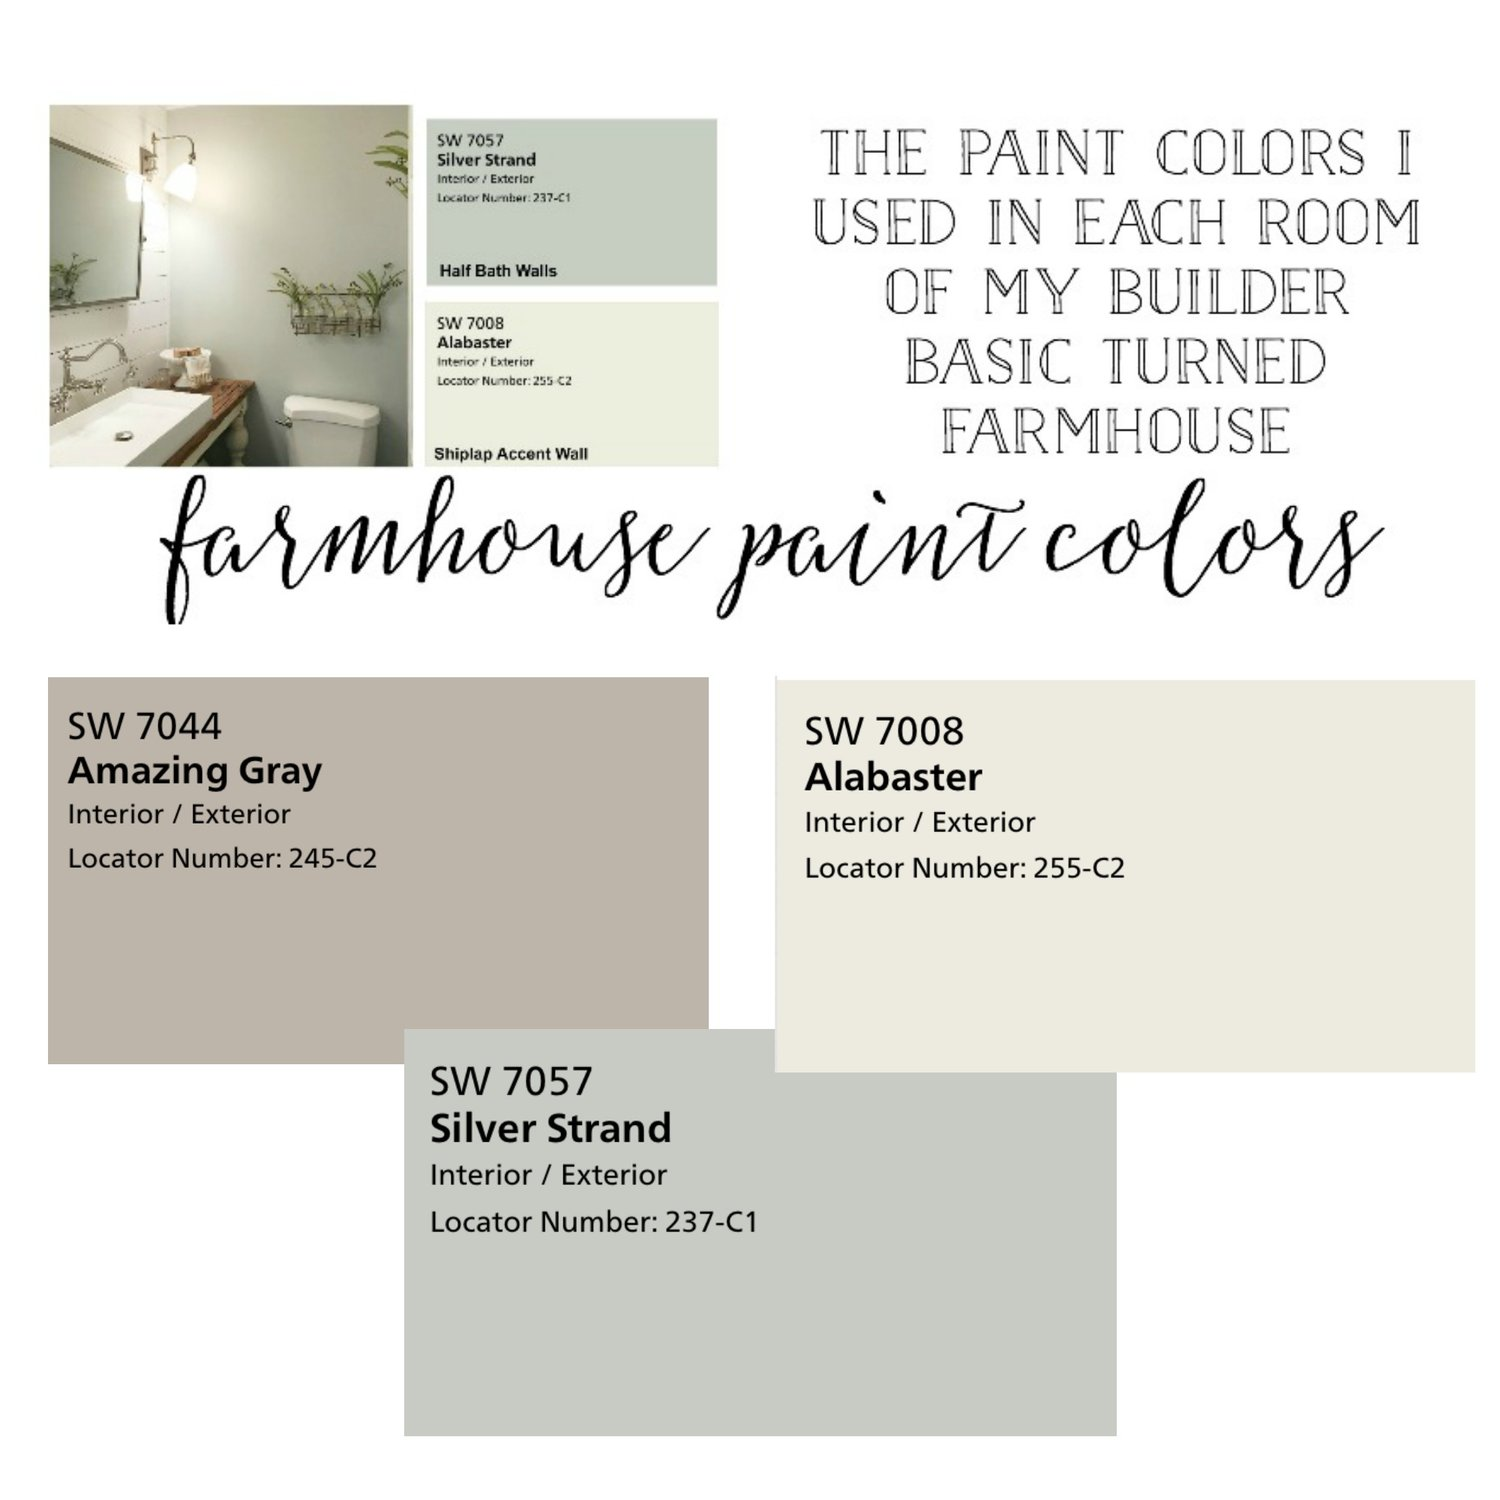 Plum Pretty Decor Design Co Farmhouse Paint Colors The Paint Colors I Used In Each Room Of My House,Controlling Variables Definition